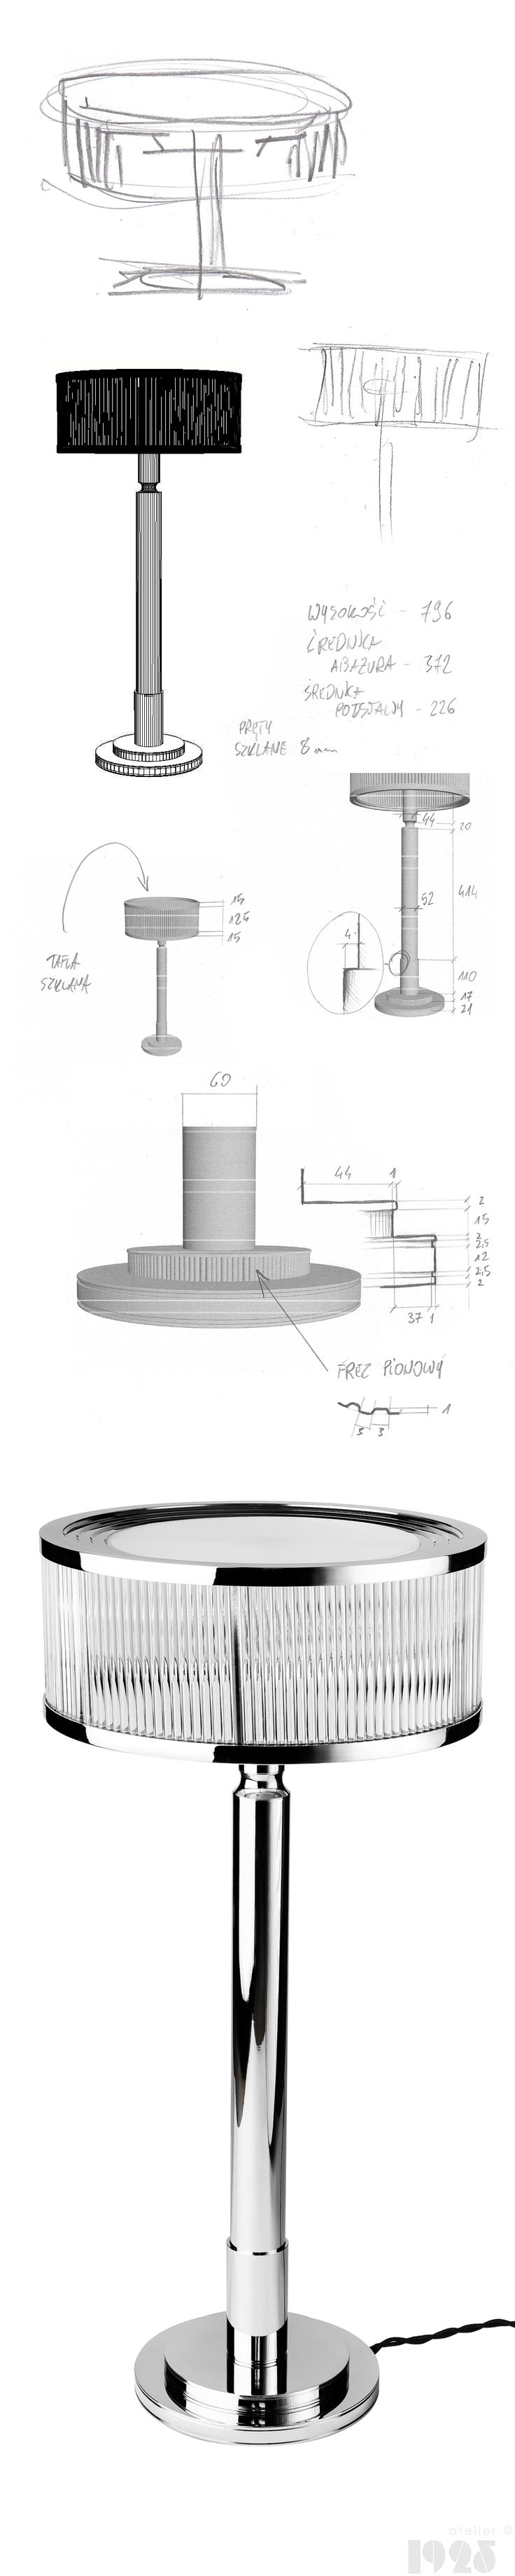 Sketches and design process of timeless and unique, art deco ispired wall lamp by atelier 1925